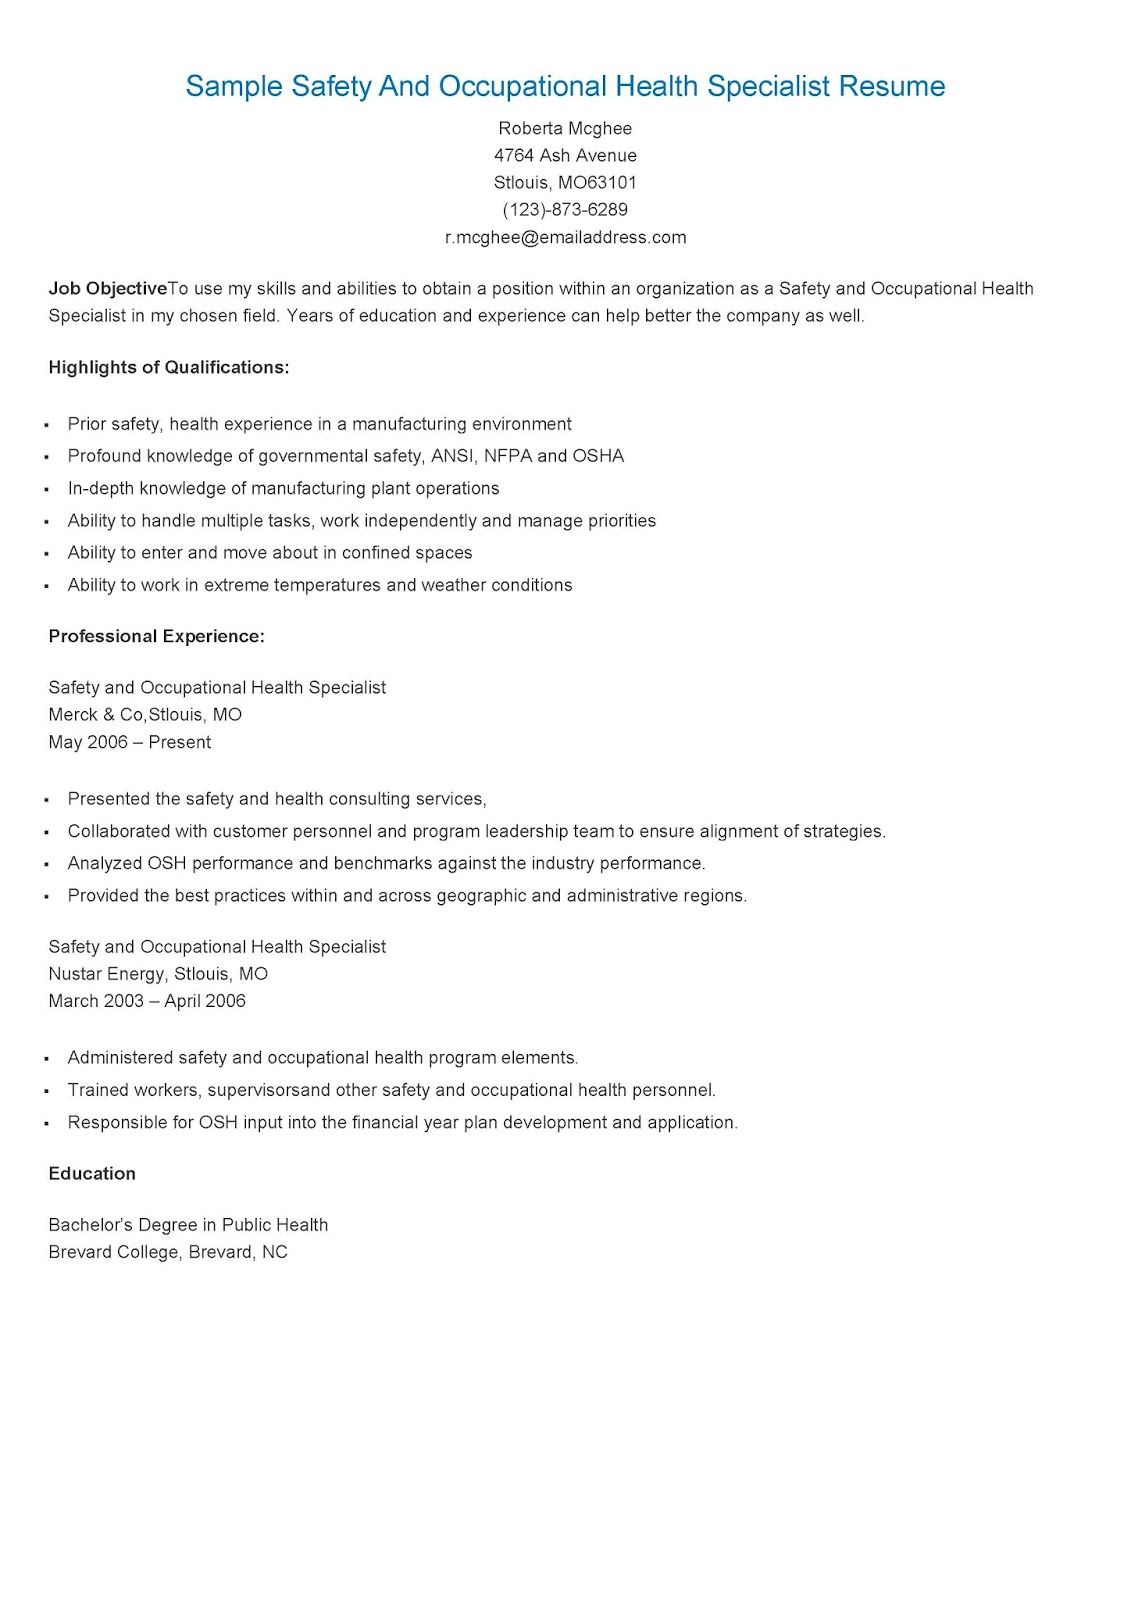 sample safety and occupational health specialist resume objective examples food data Resume Food Safety Resume Objective